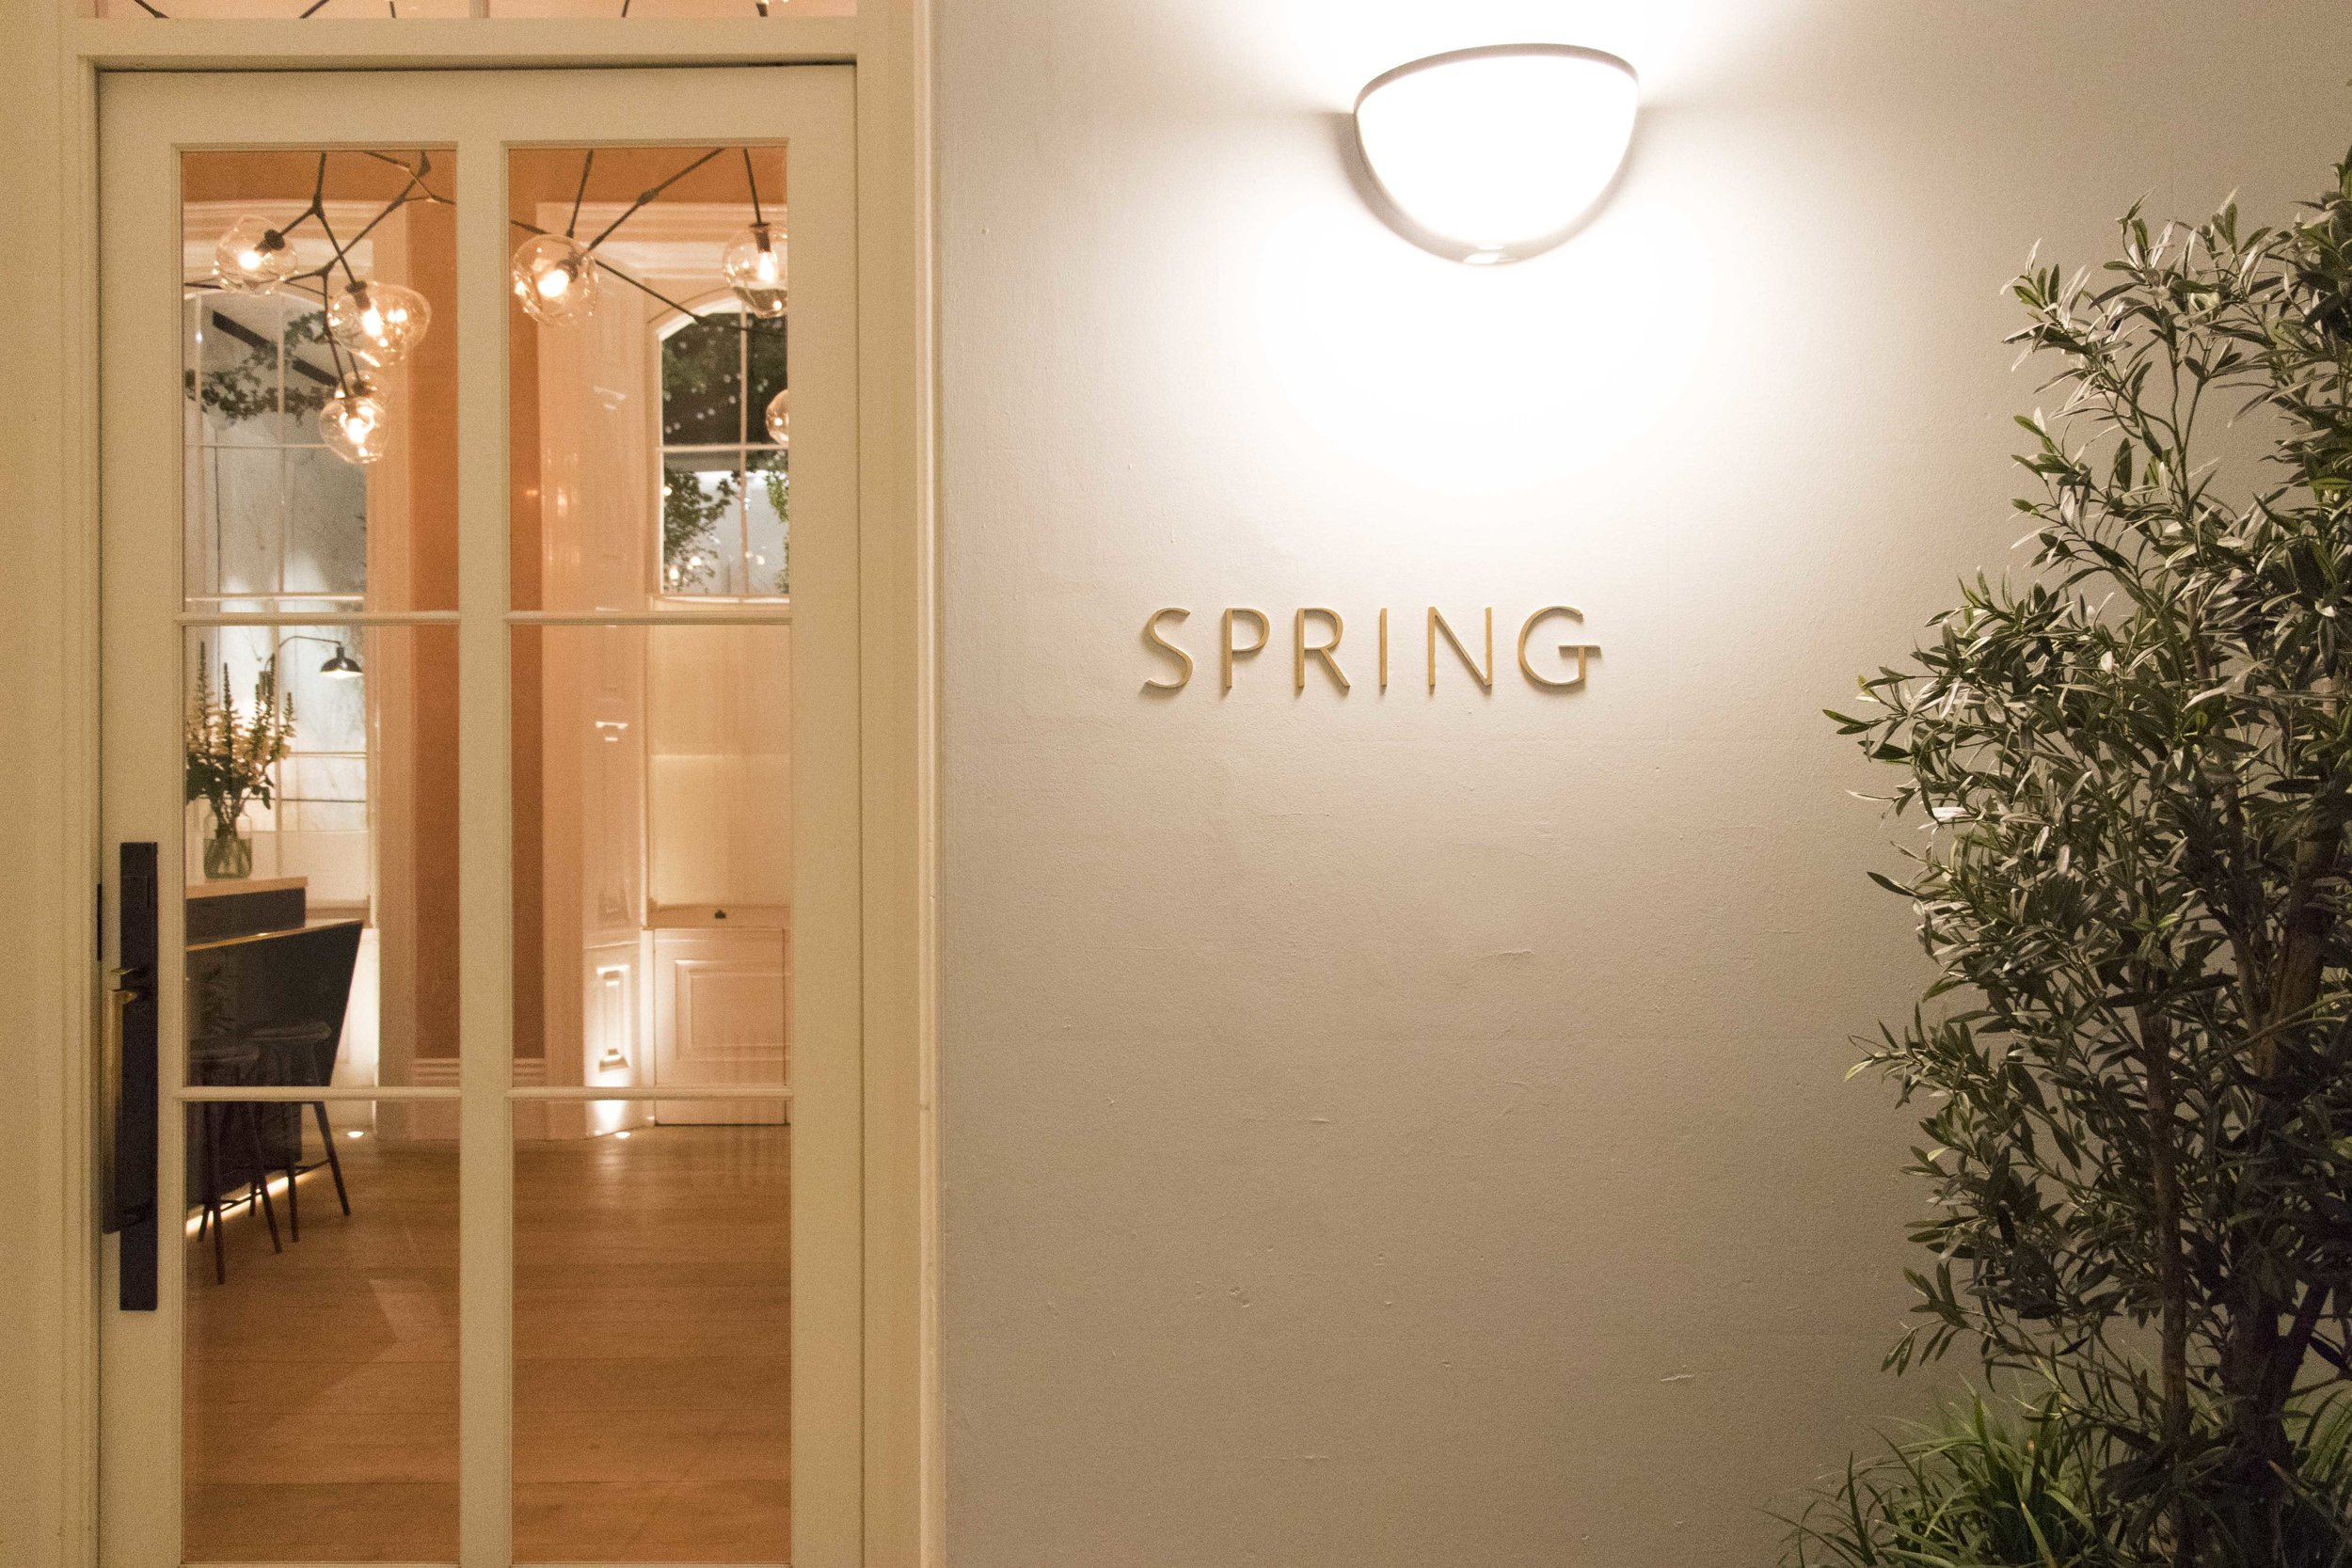 The entrance to Spring inside Somerset House. Photos by Cathy McKinnon